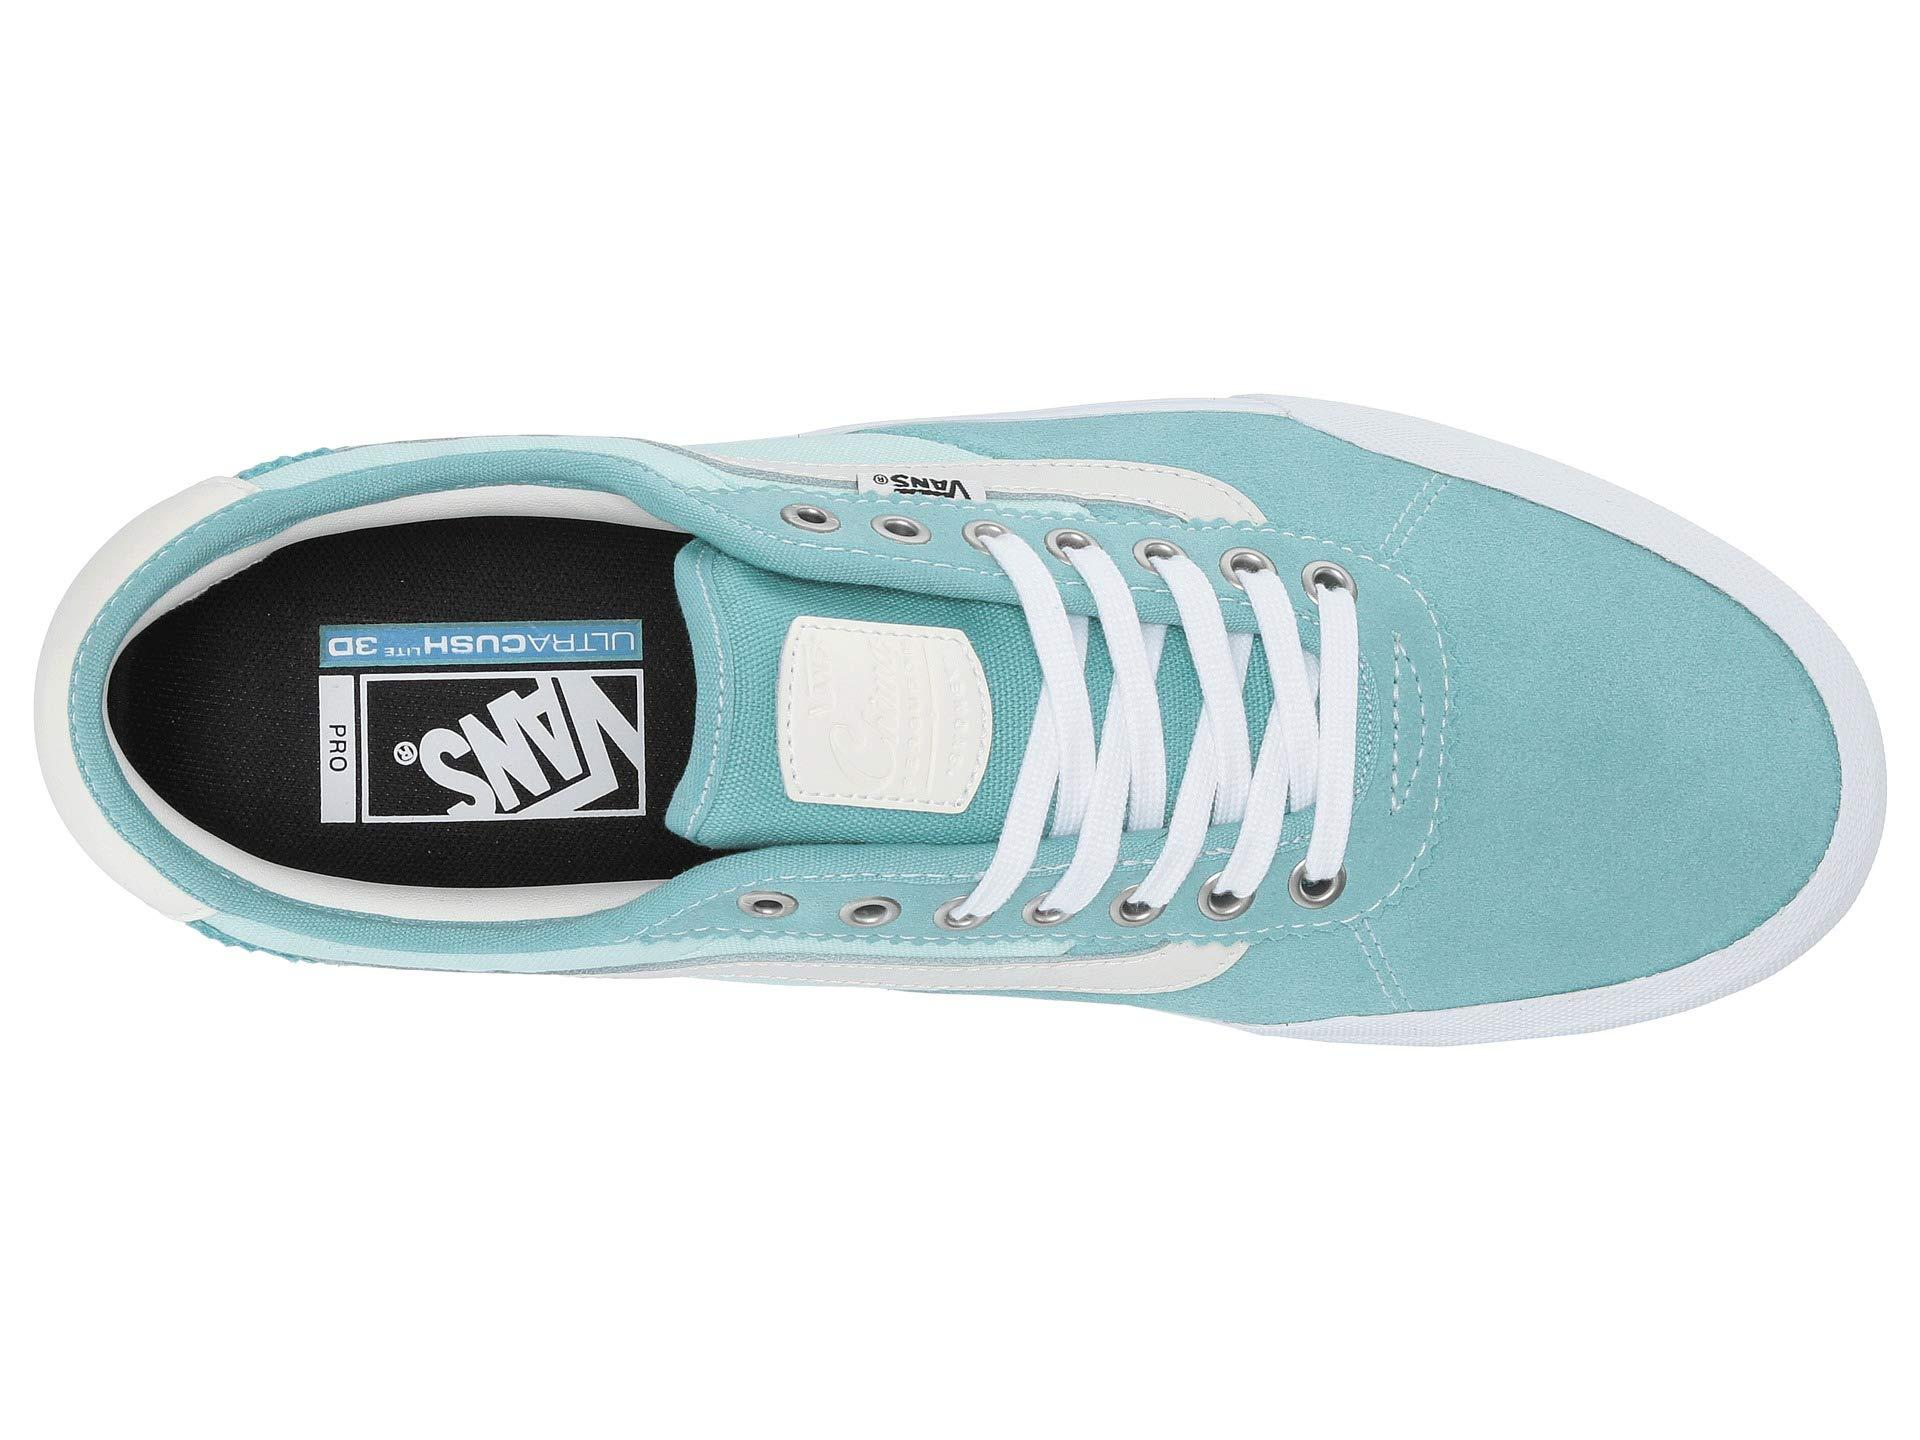 10adb1fed0a Vans - Blue Chima Pro 2 ((suede canvas) Black white). View fullscreen